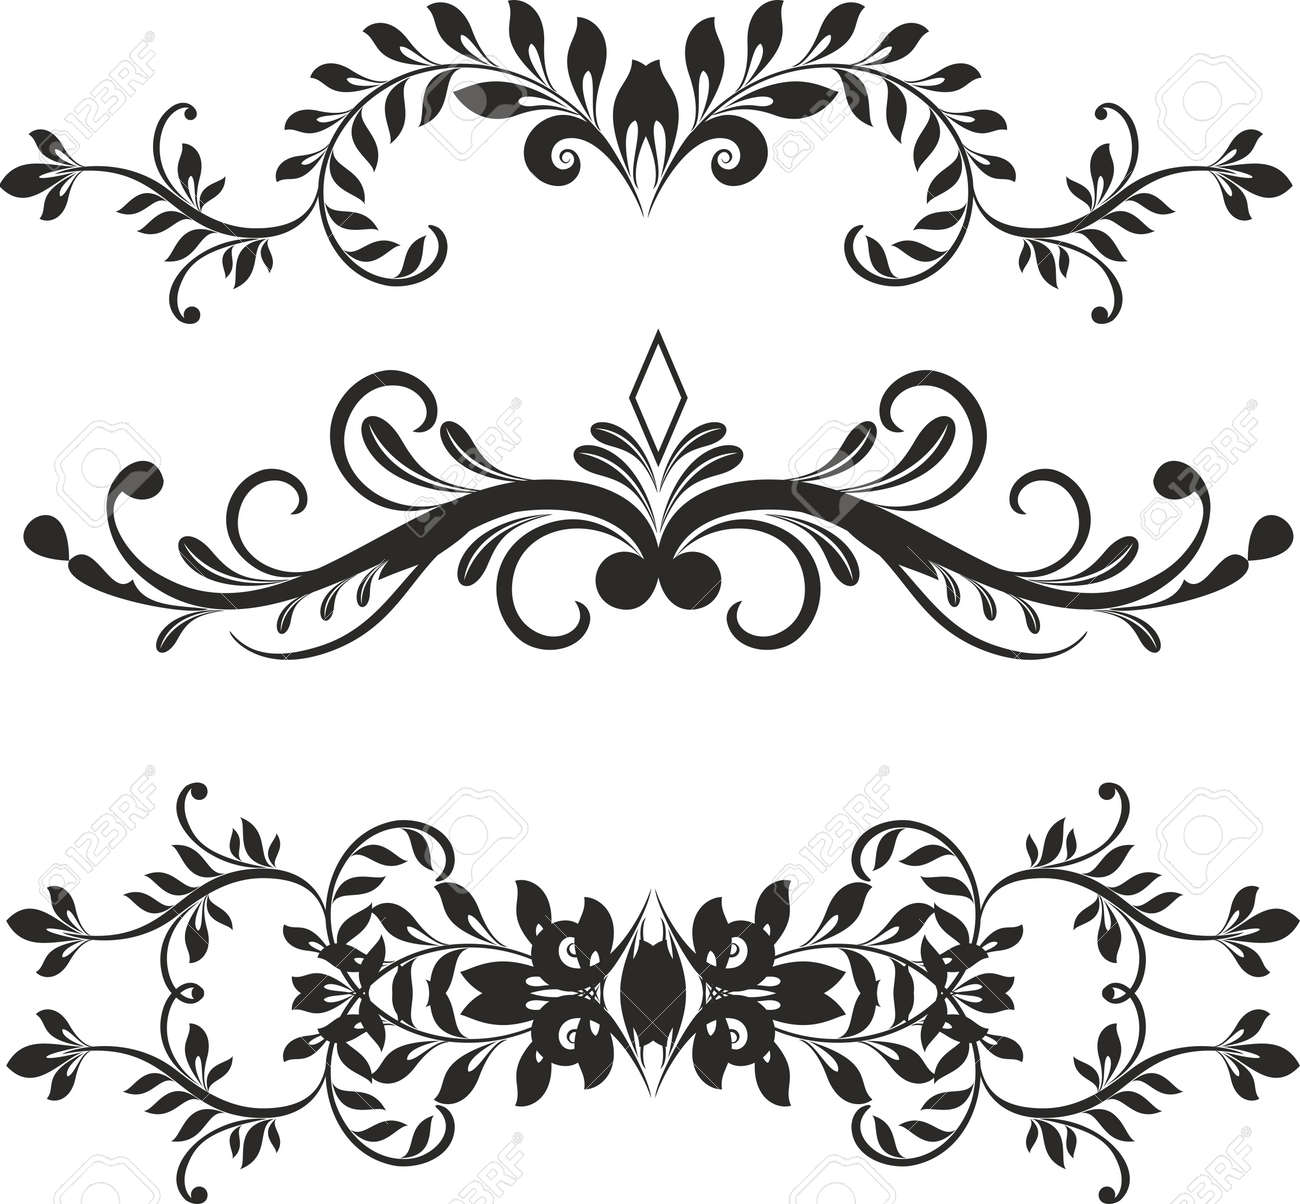 floral design elements vector royalty free cliparts vectors and